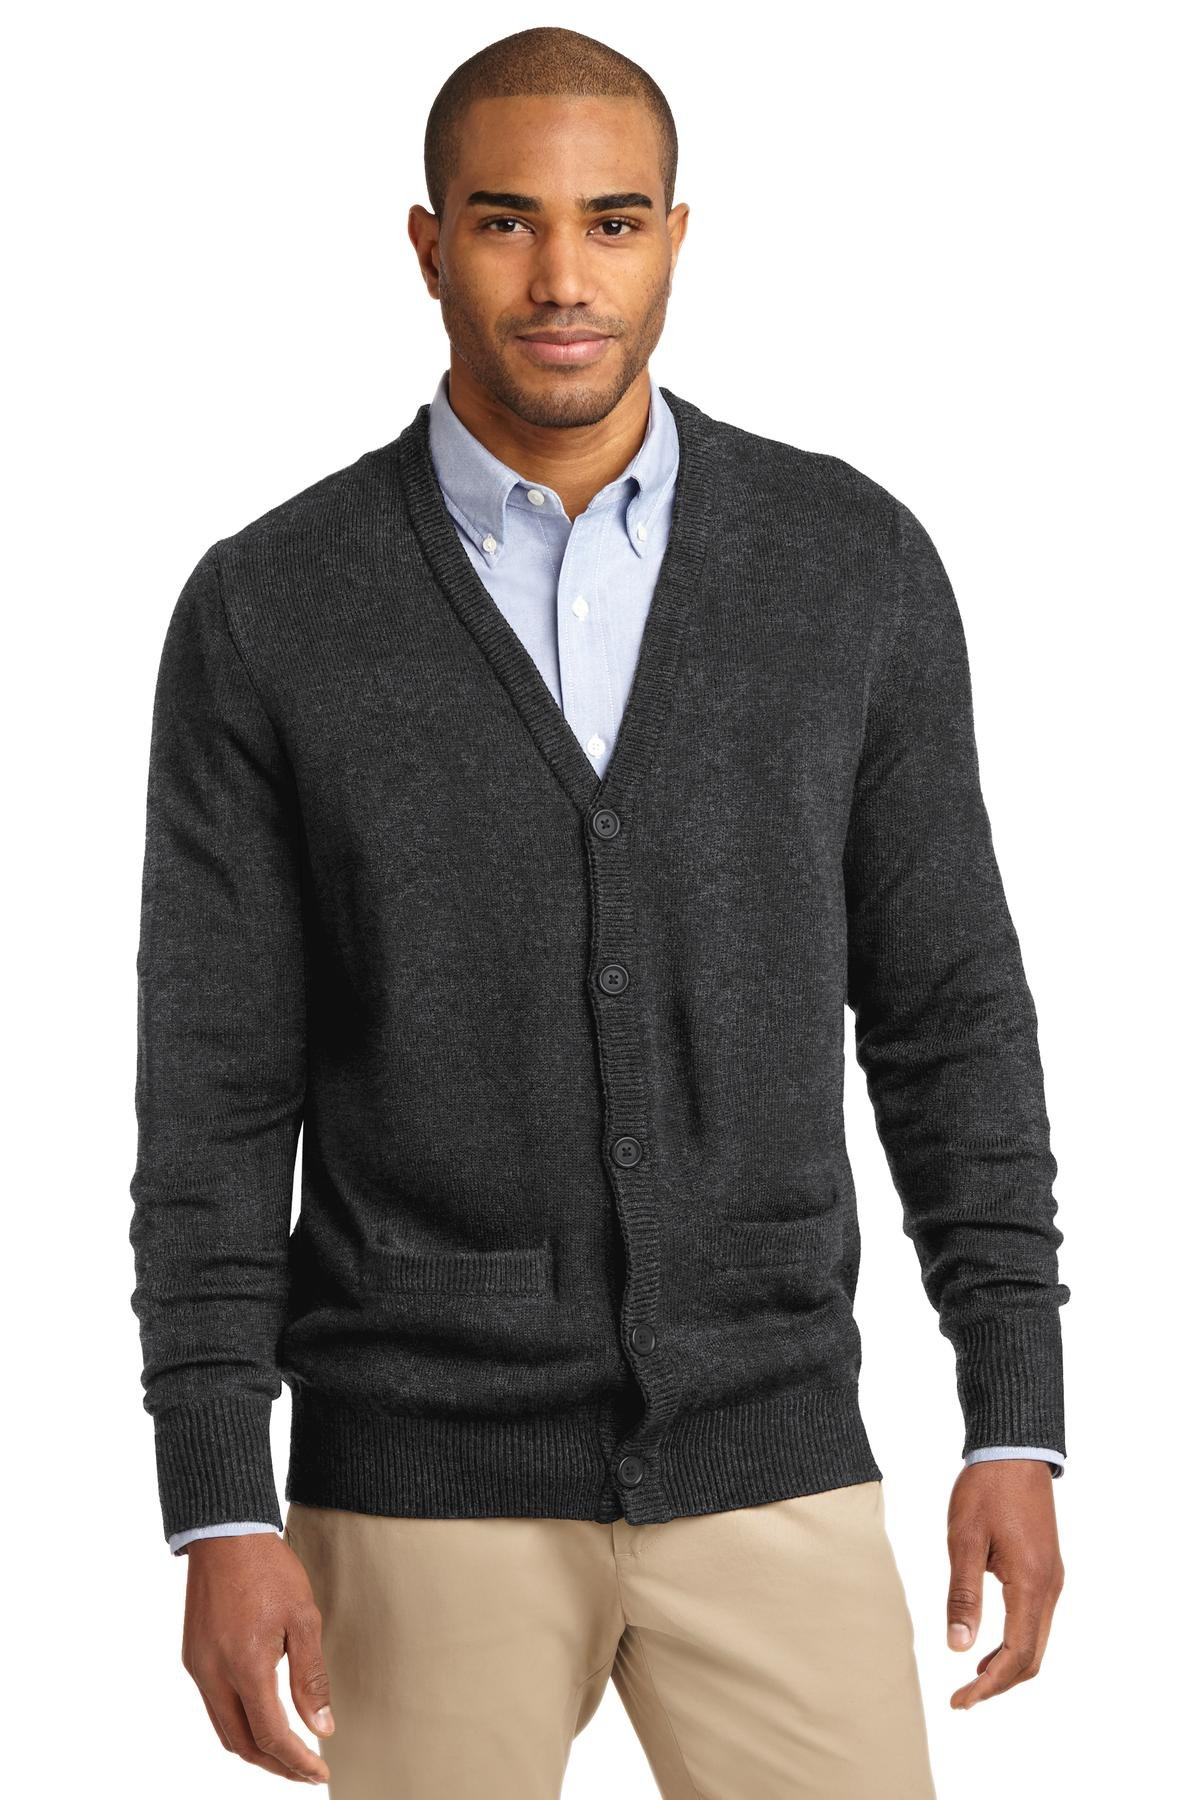 Port Authority Men's Value V Neck Cardigan Sweater with Pockets L Charcoal Grey